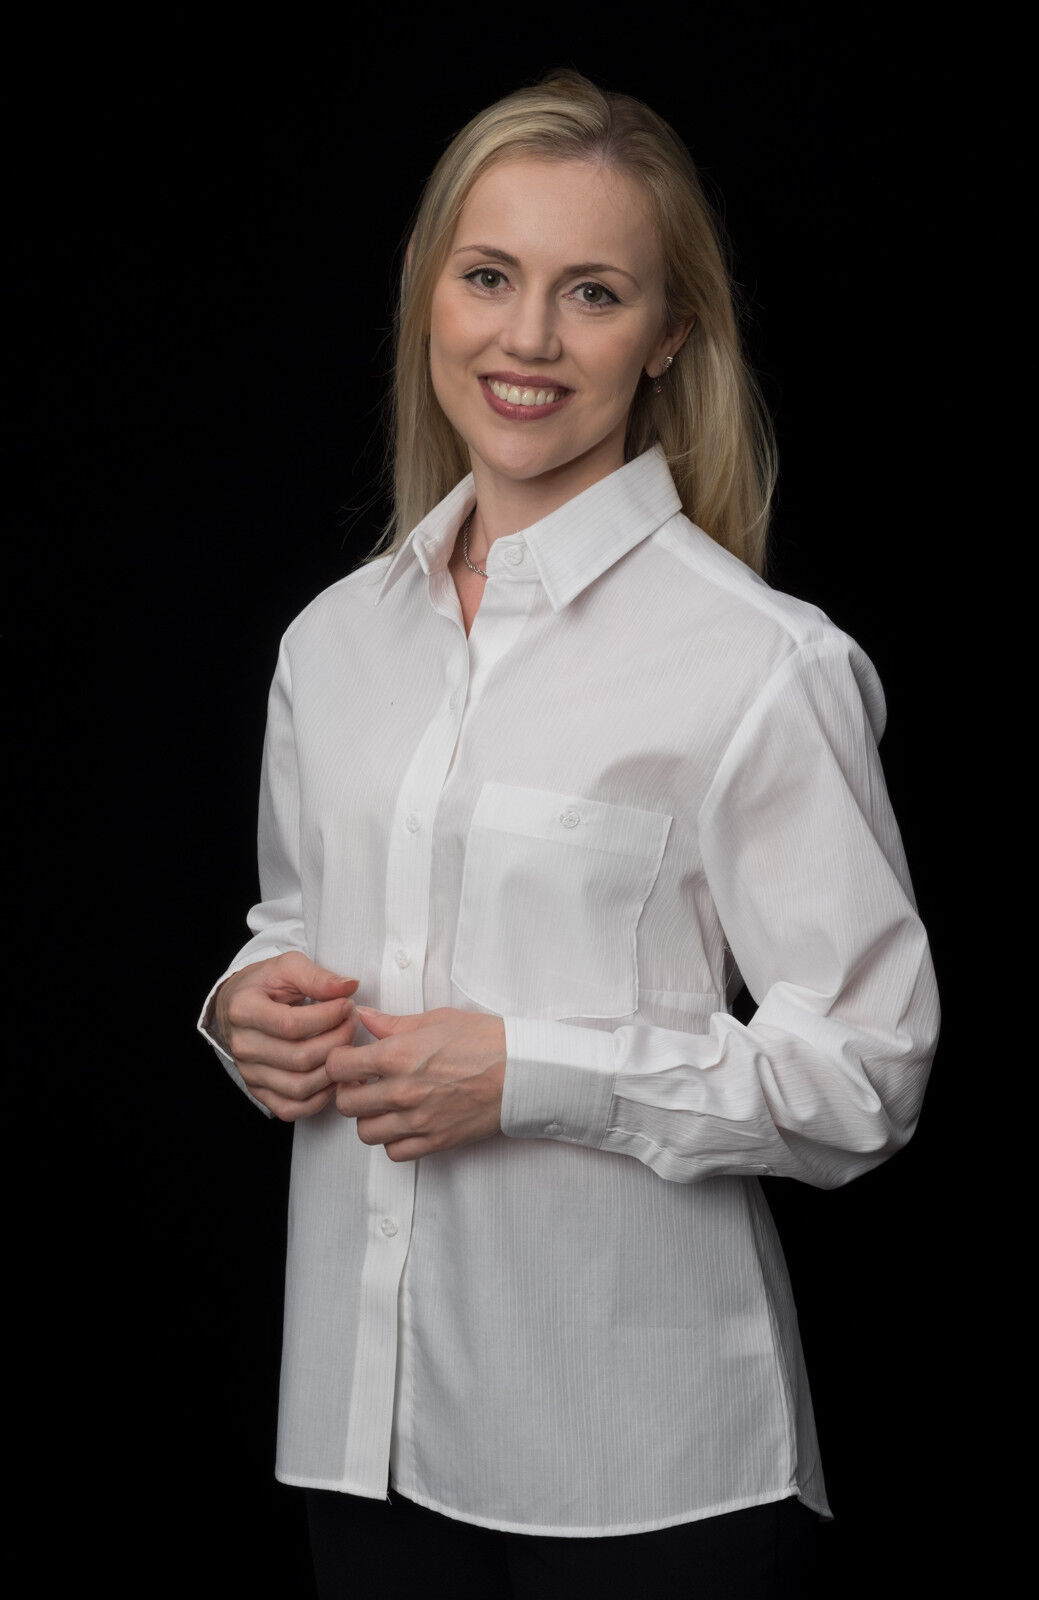 Ladies Blouse - Ladies Shirt - Australian Traditional Clothing - 612416